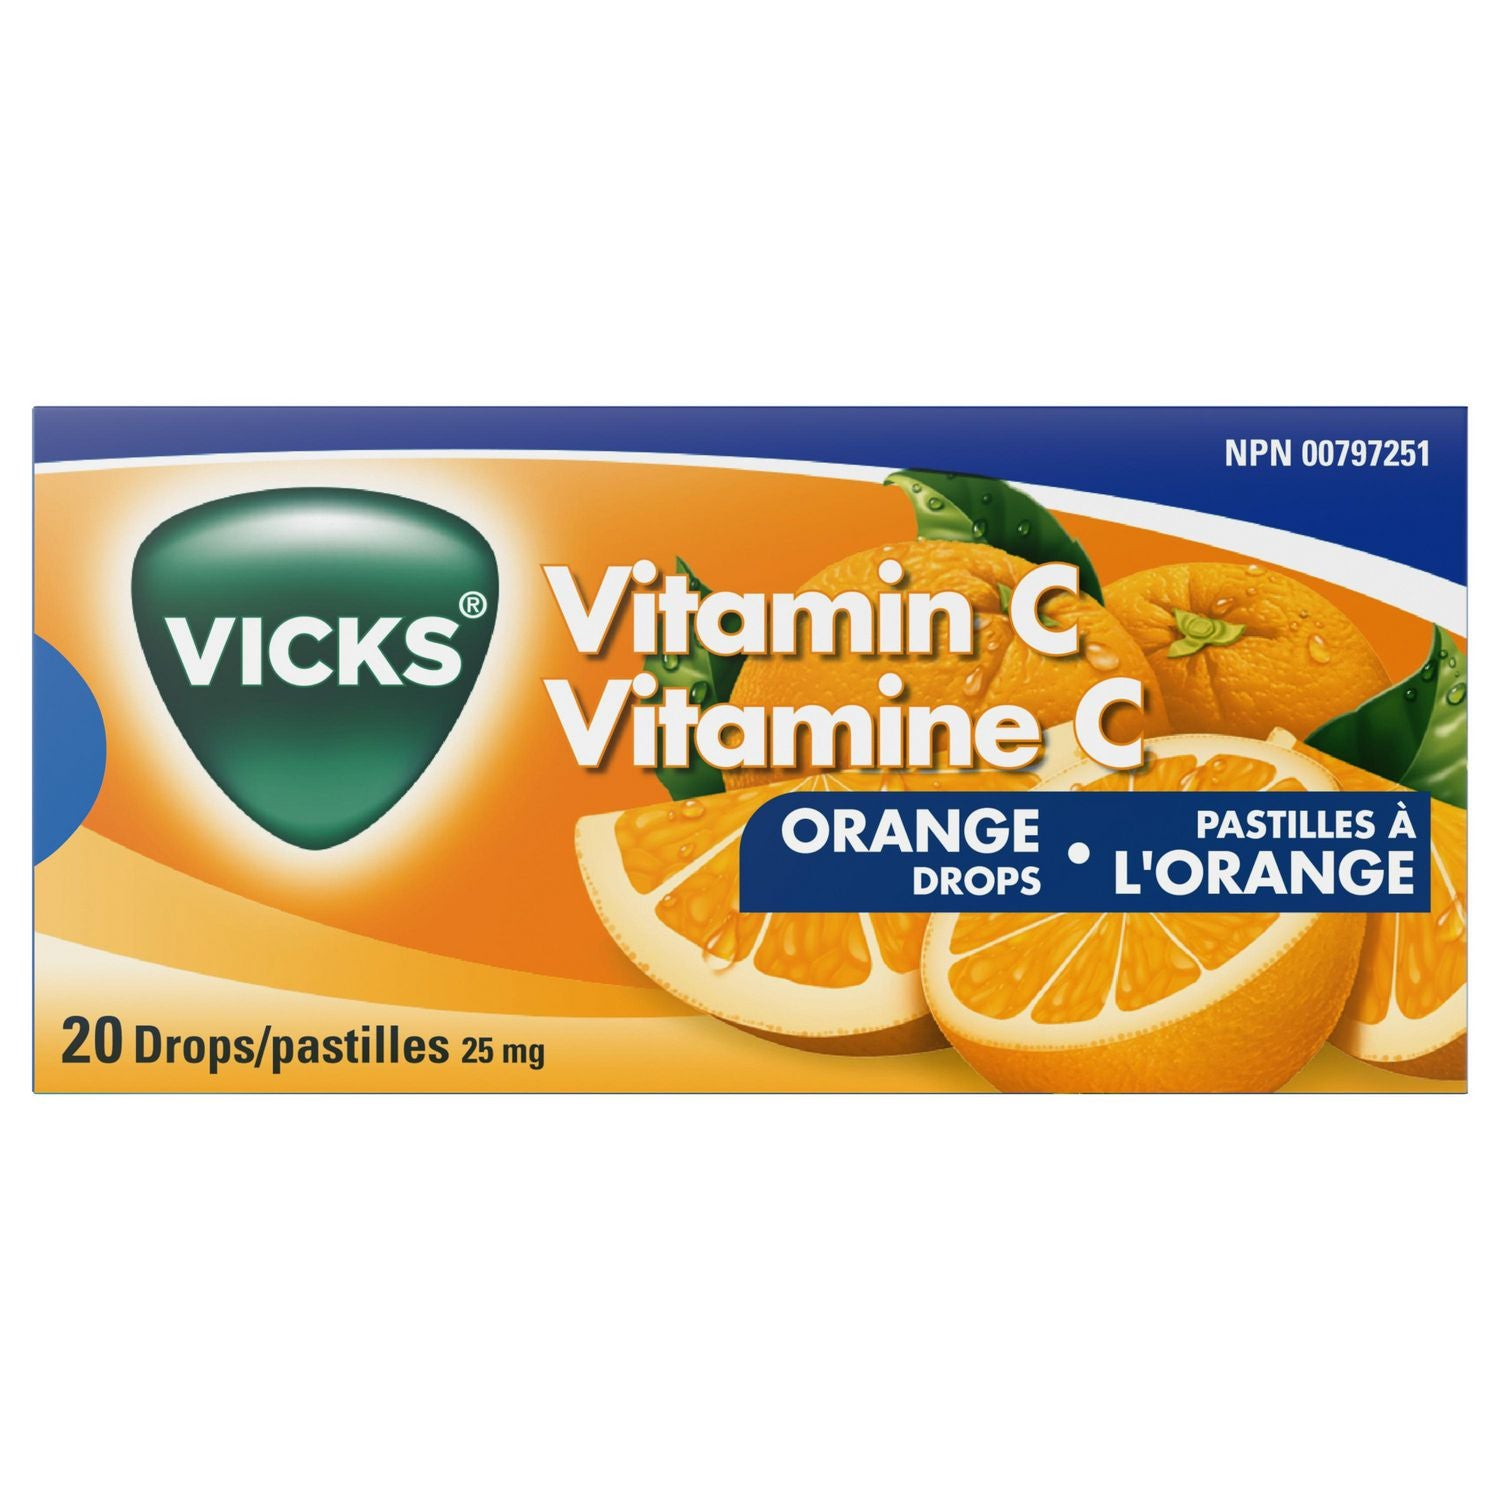 Vicks Vitamin C Orange Drops 20 Drops